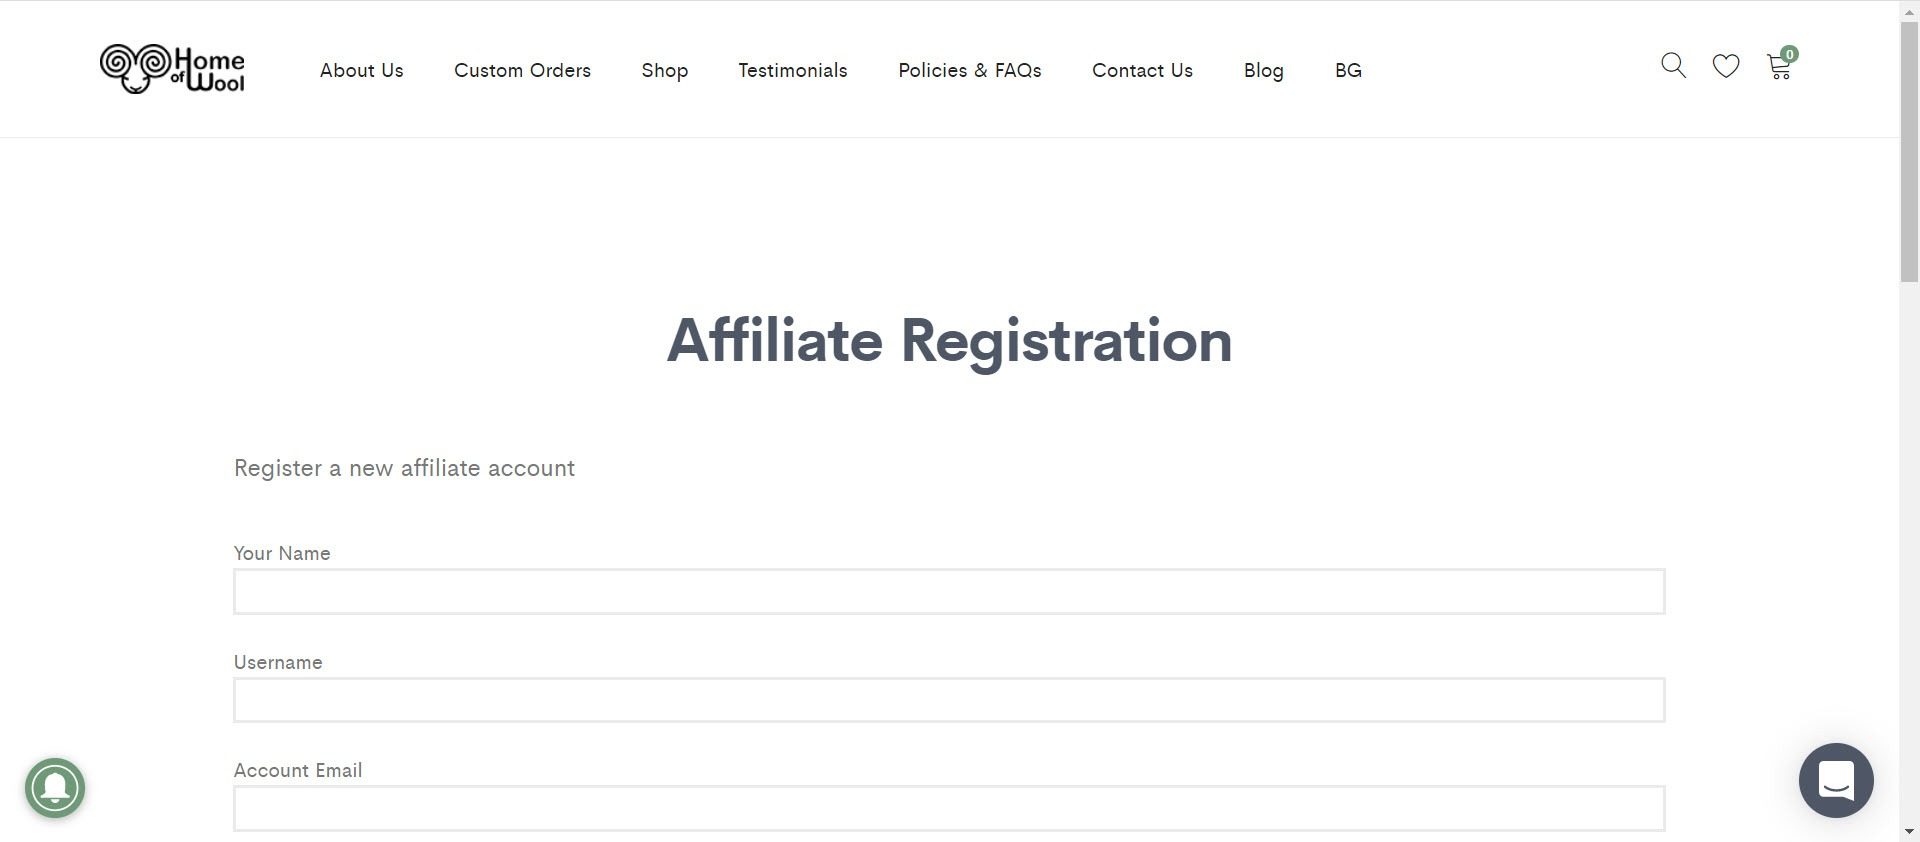 Knitting Affiliate Programs - Home of Wool Affiliate